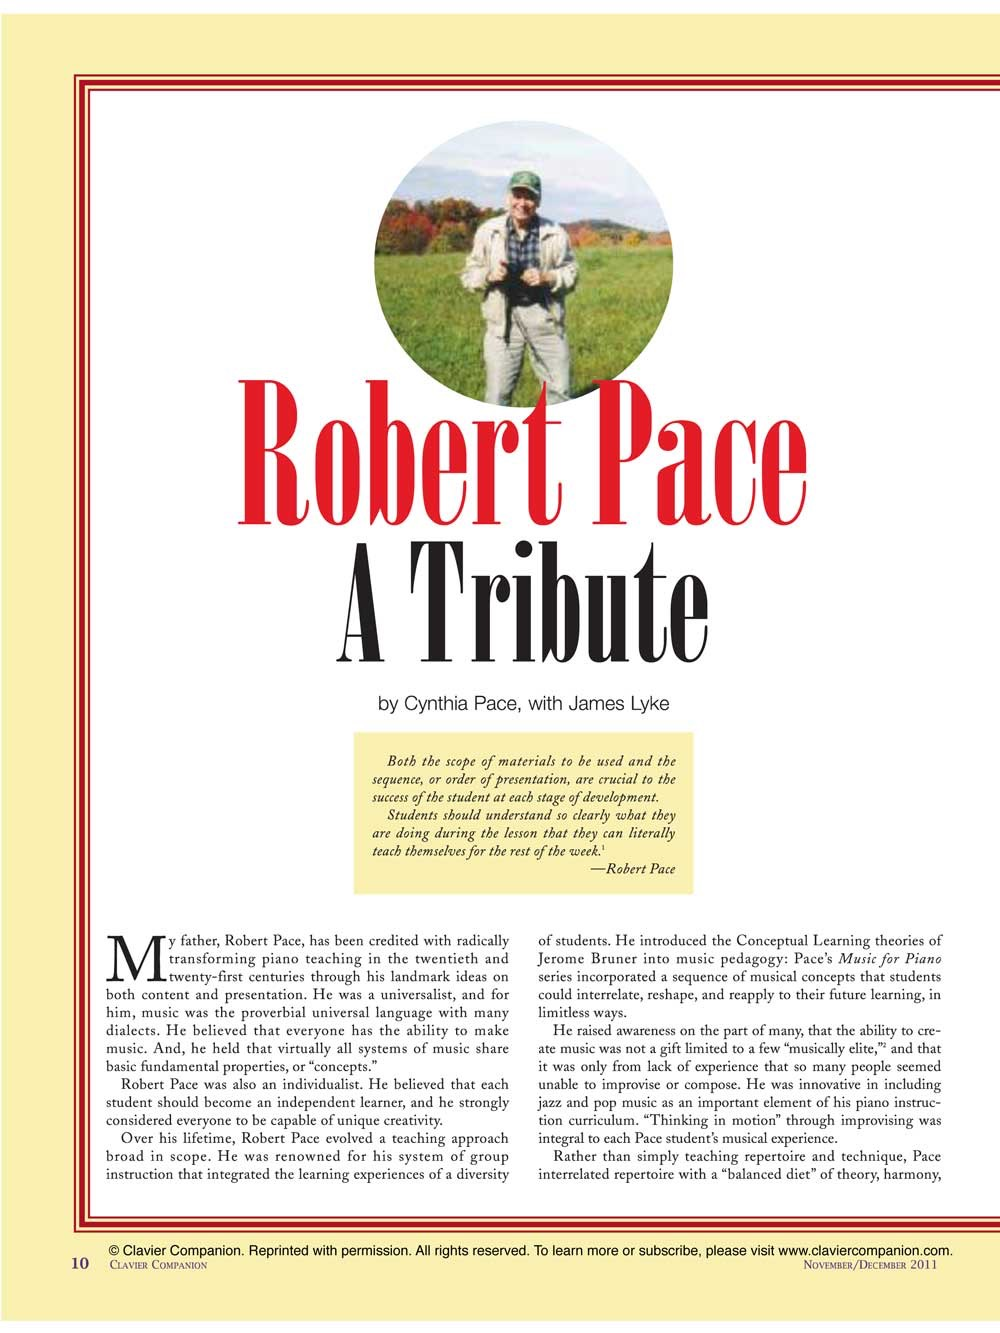 Tribute to Robert Pace, By Cynthia Pace With Reminiscences By Jim Lyke, Nov/Dec Clavier Companion Magazine, 2011.